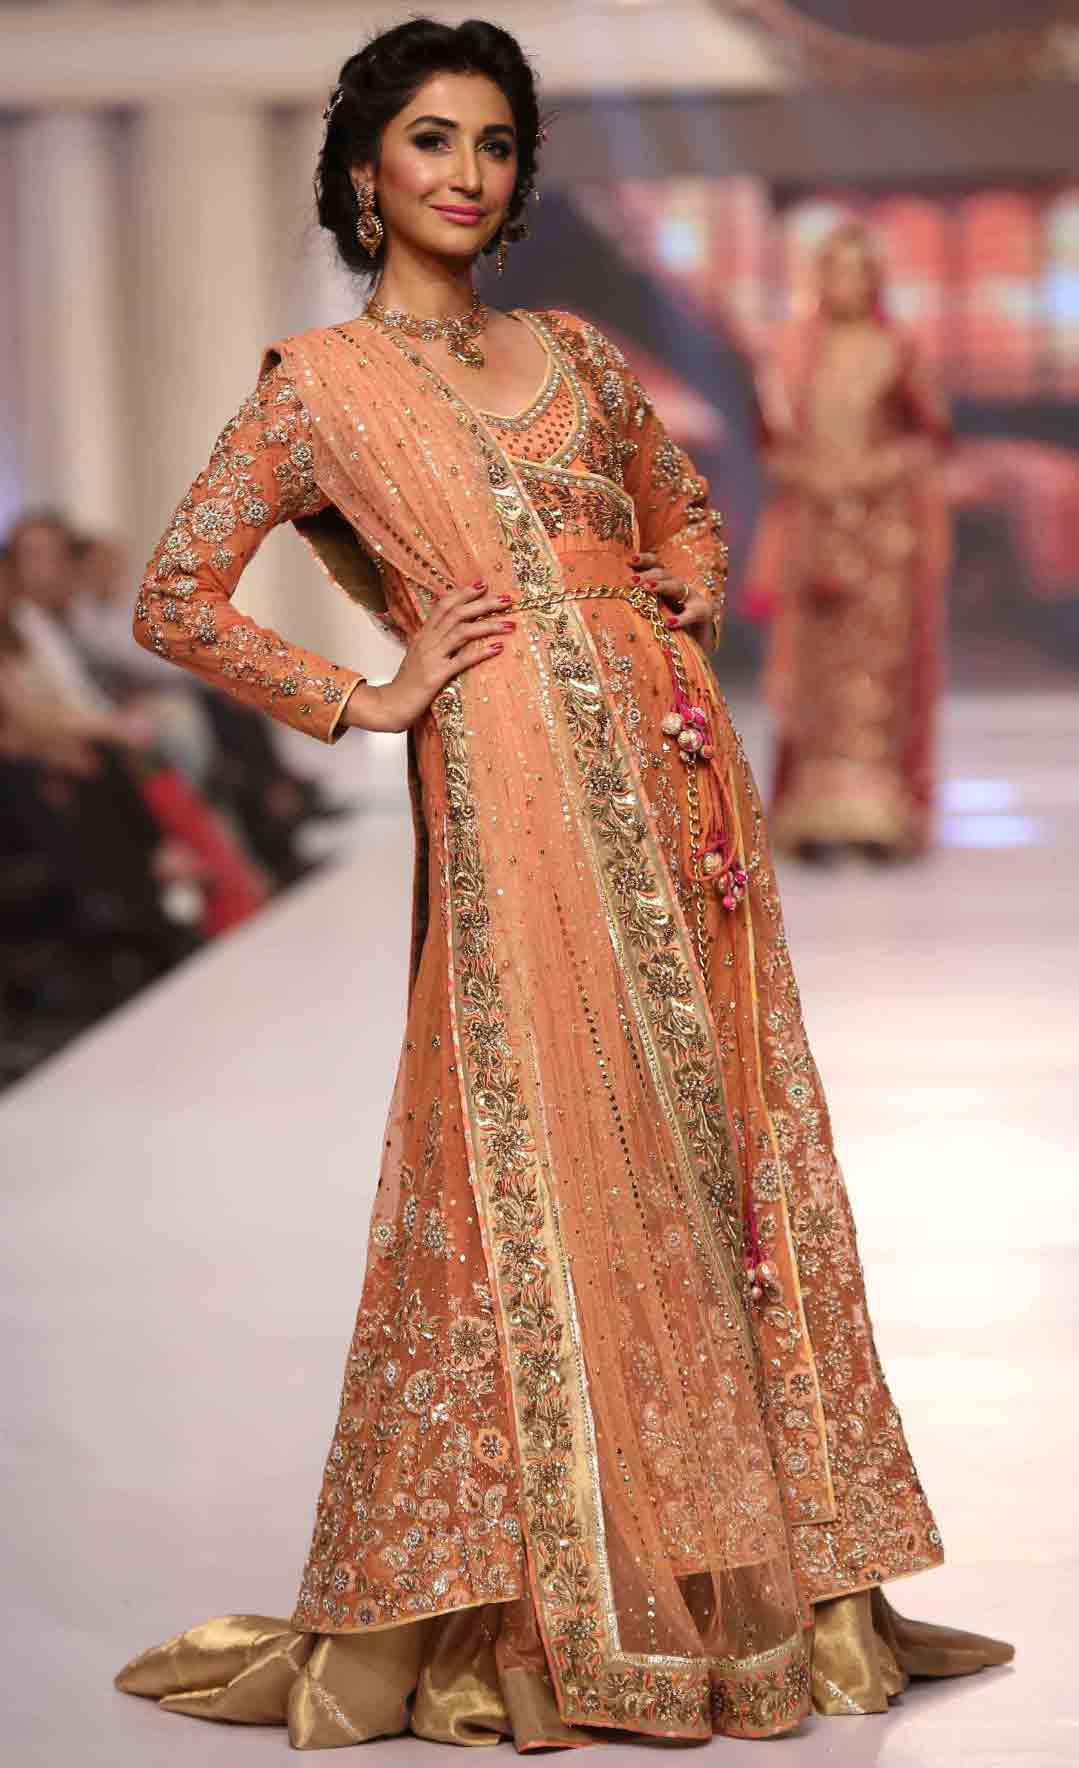 Peach Pakistani bridal long tail maxi gown dress designs 2017 with dupatta